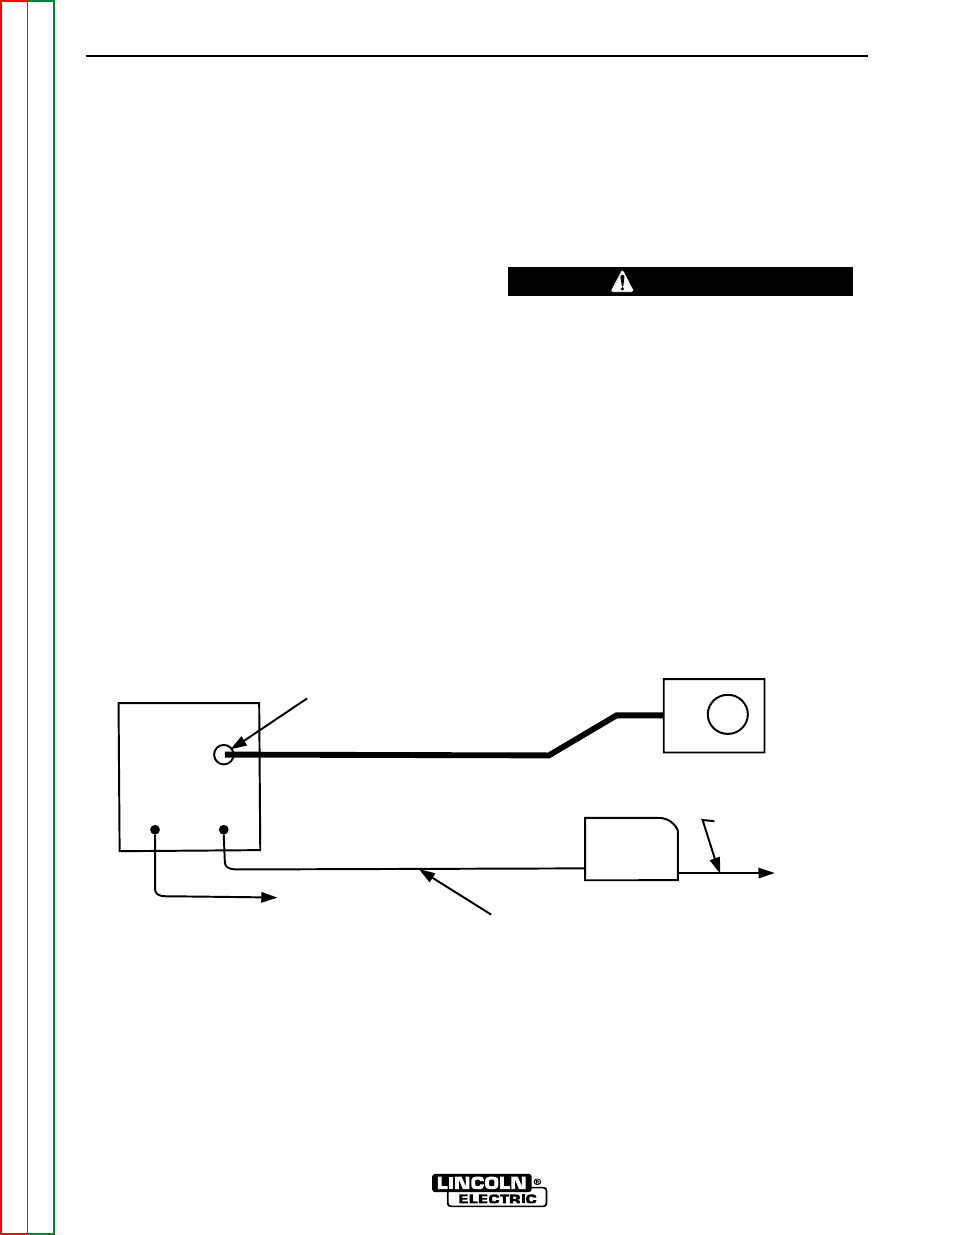 Accessories Caution Lincoln Electric Invertec V350 Pro Svm152 A 8 Prong Switch Wiring Diagram Pto User Manual Page 19 155